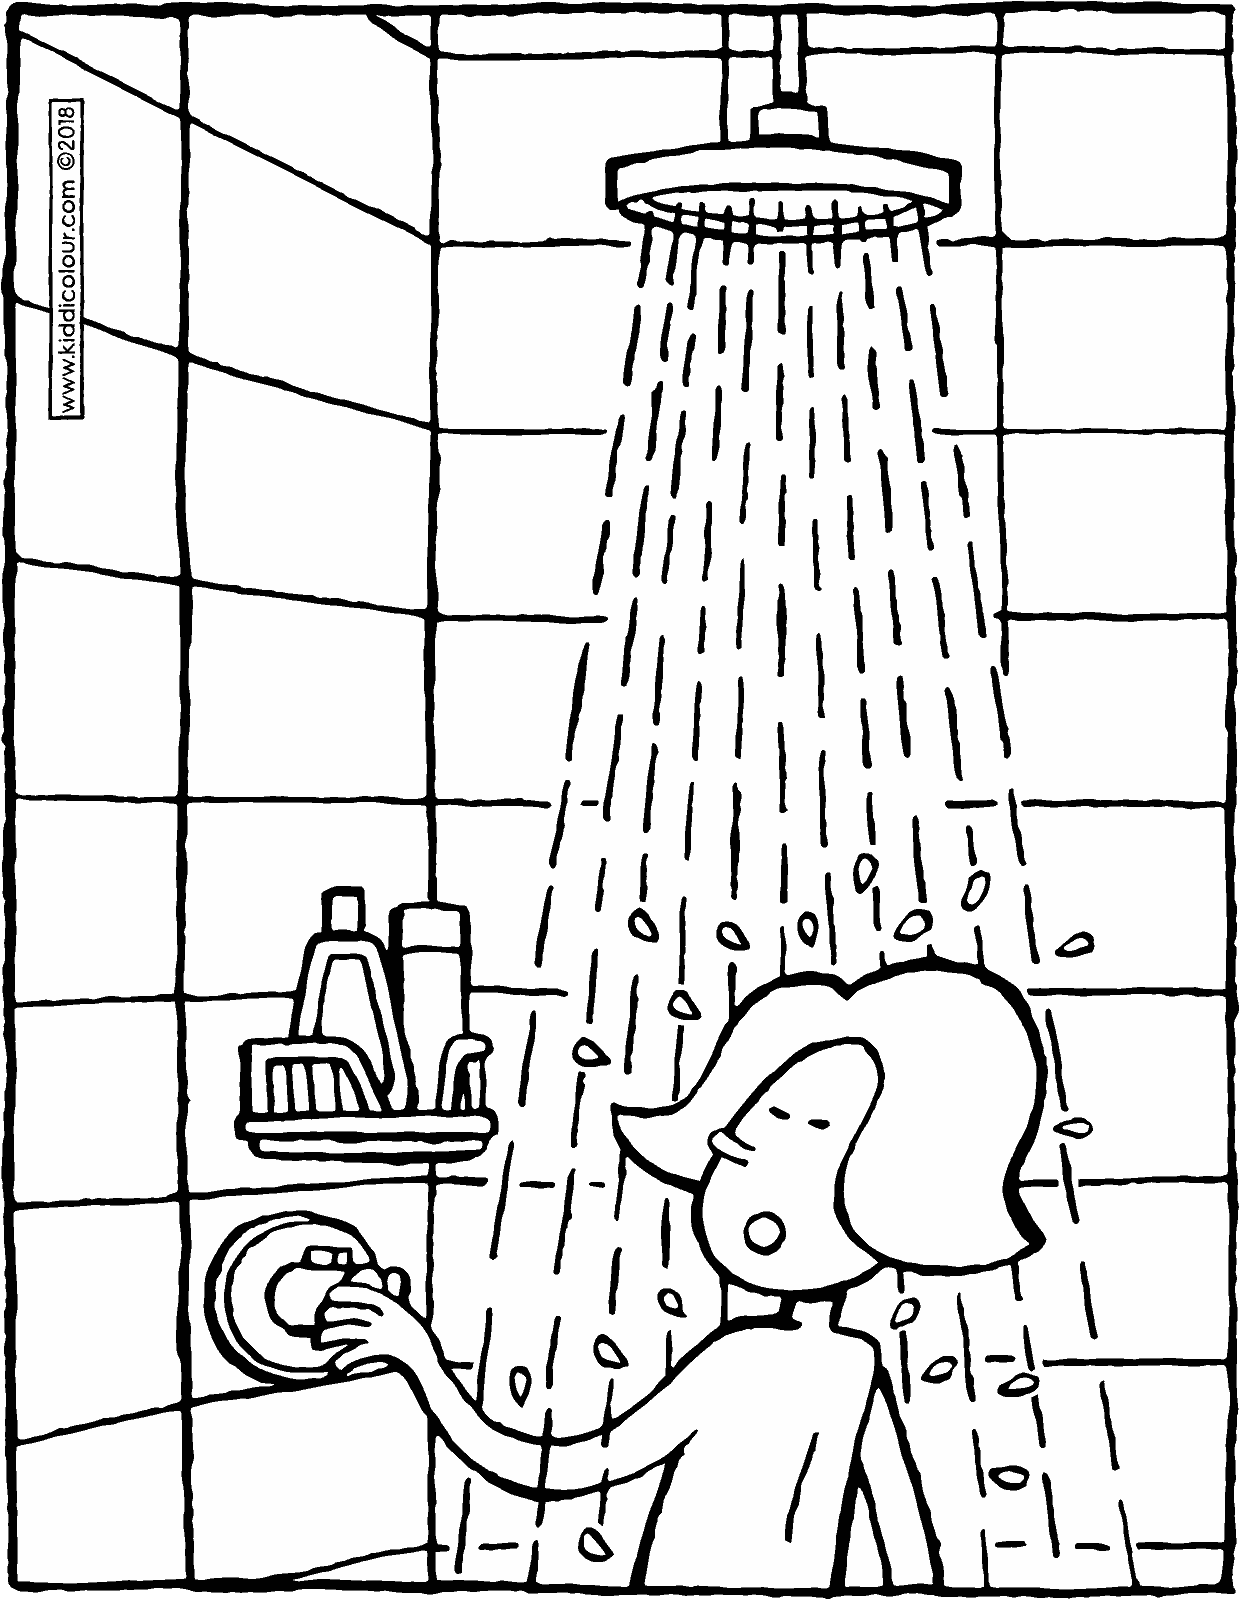 Emma takes a shower colouring page drawing picture 01V